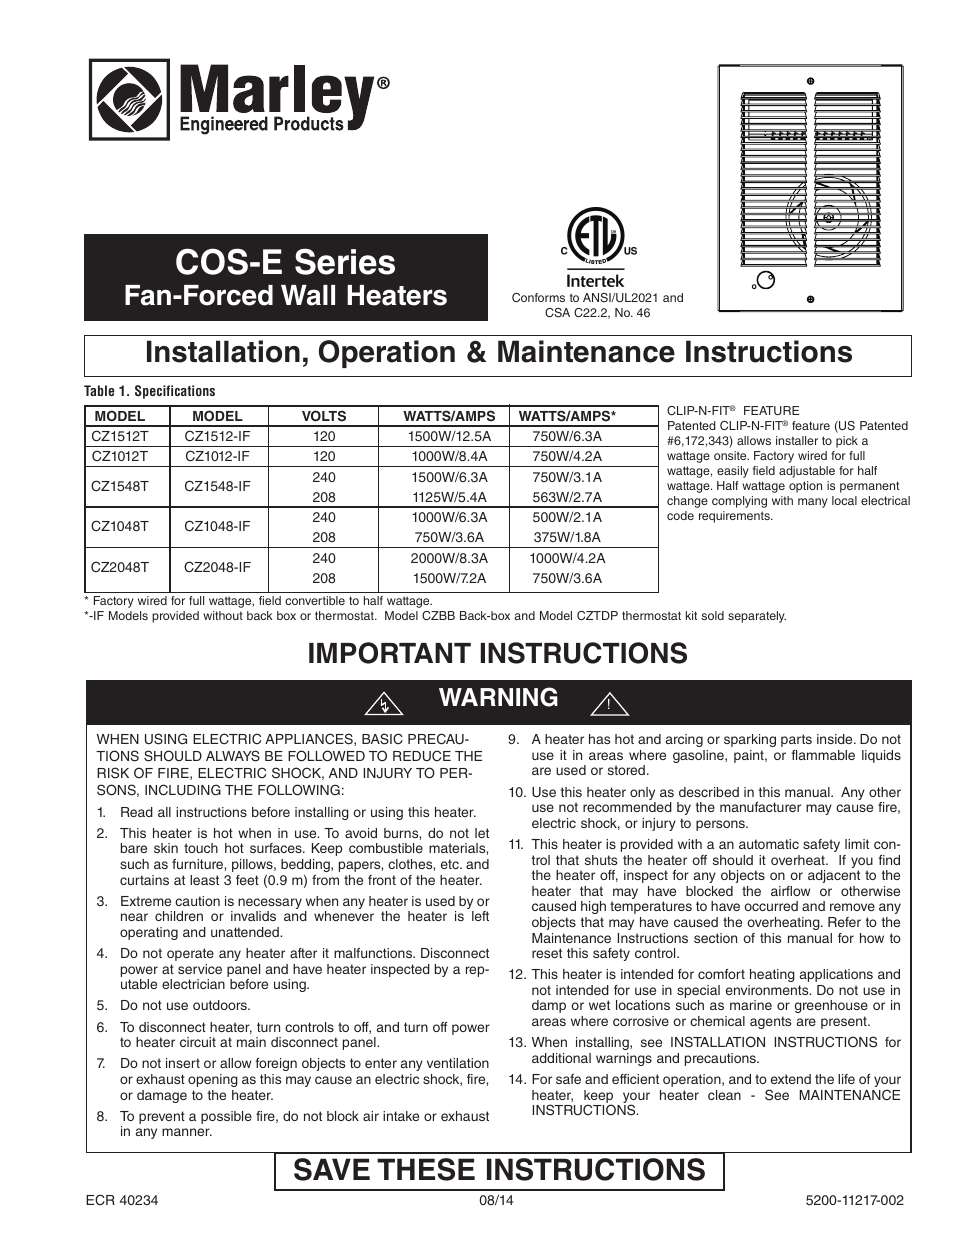 Luxury Residential Electrical Code Requirements Ensign - Electrical ...